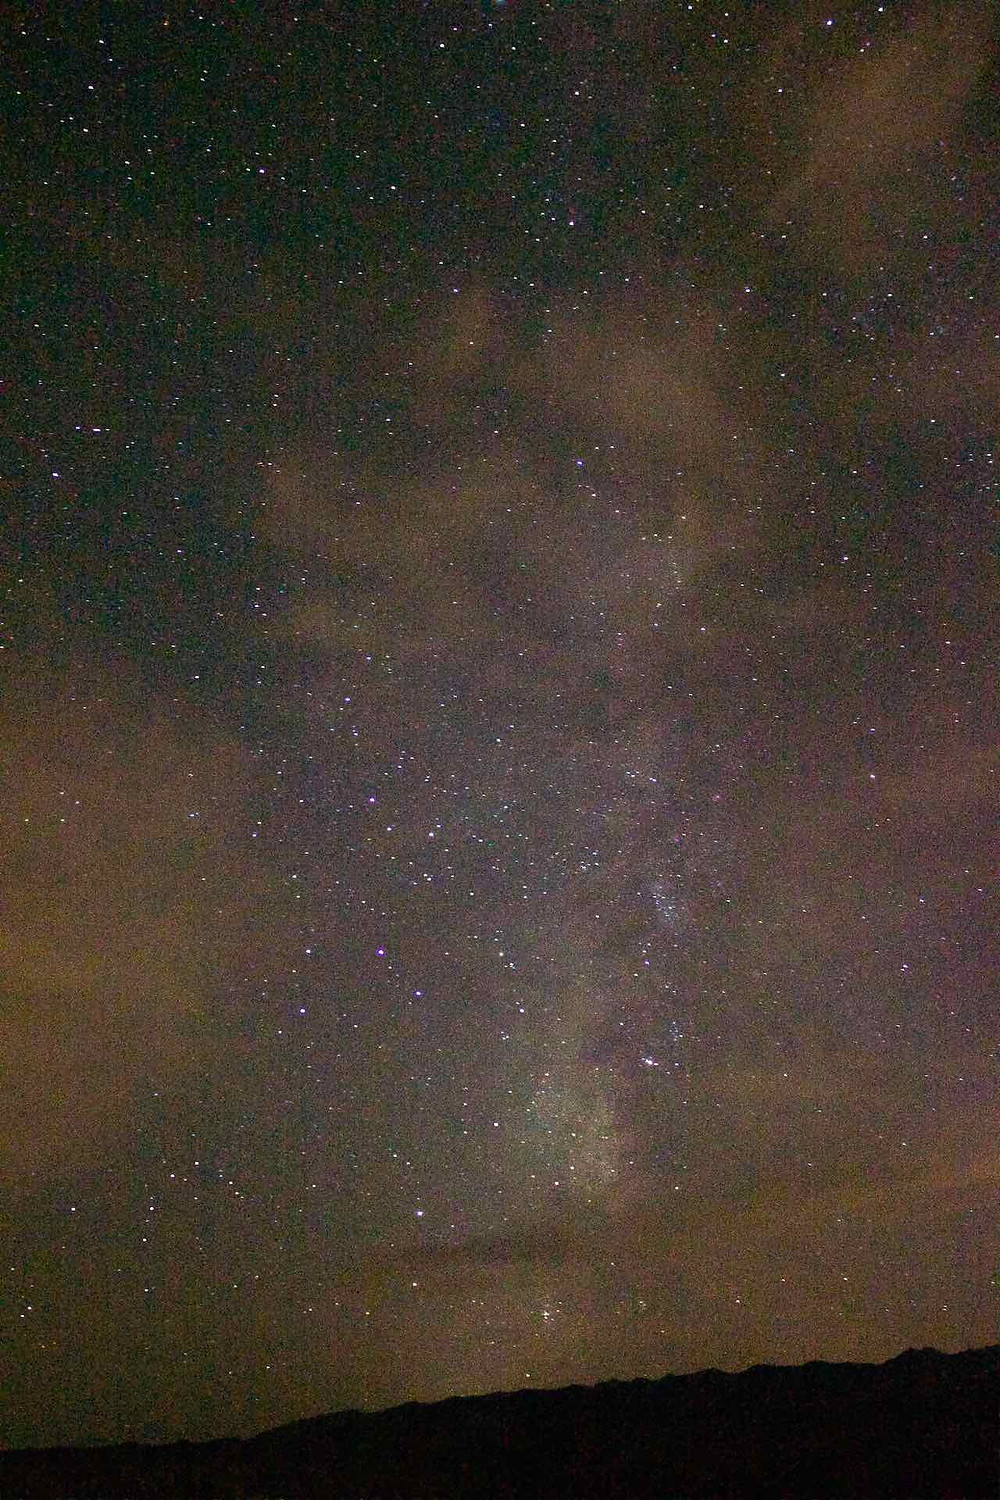 The Milky Way with clouds